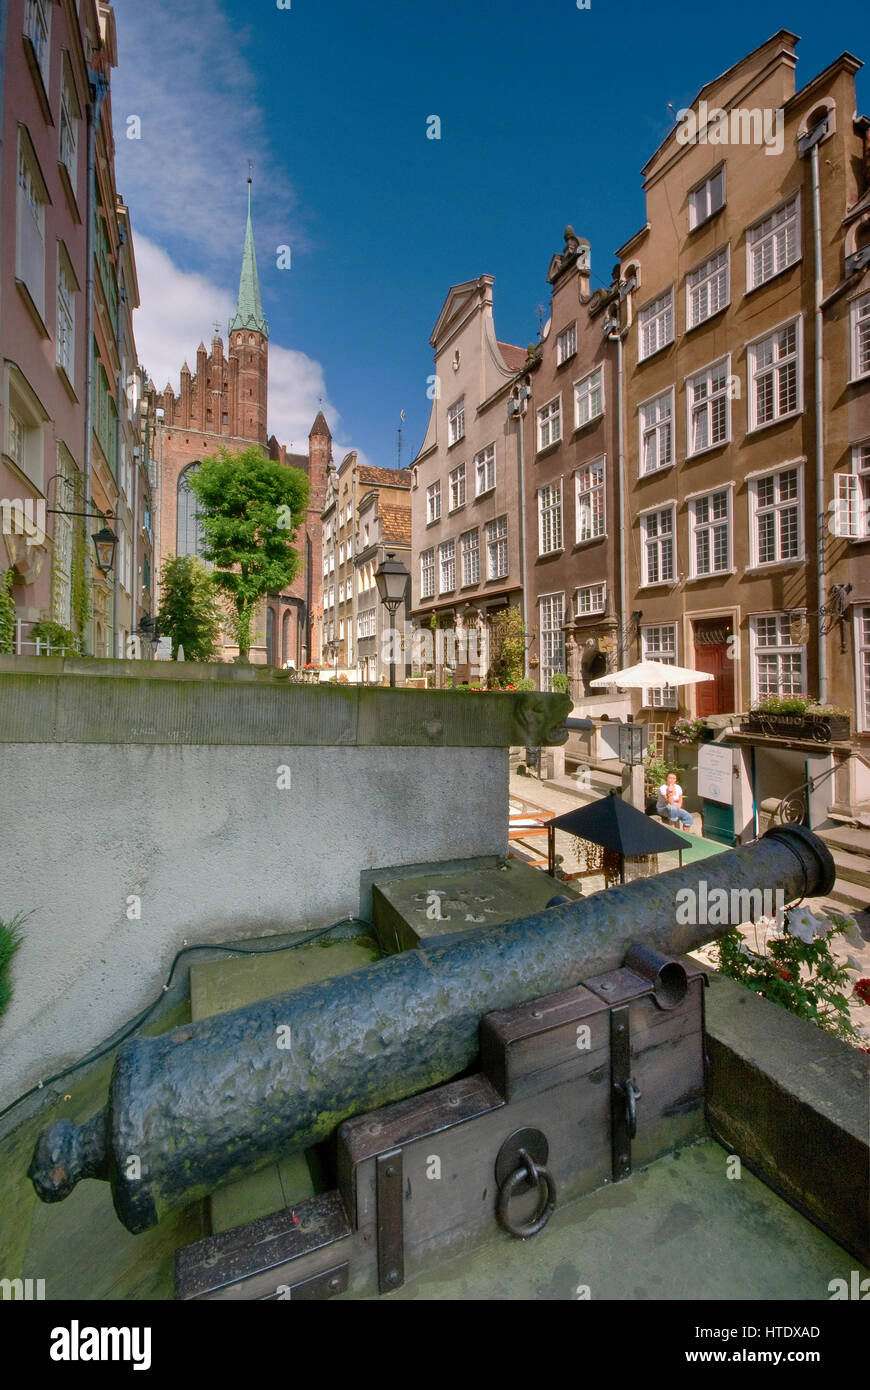 Cannon at terrace at ulica Mariacka (St Mary Street) in Gdansk, Pomerania, Poland - Stock Image